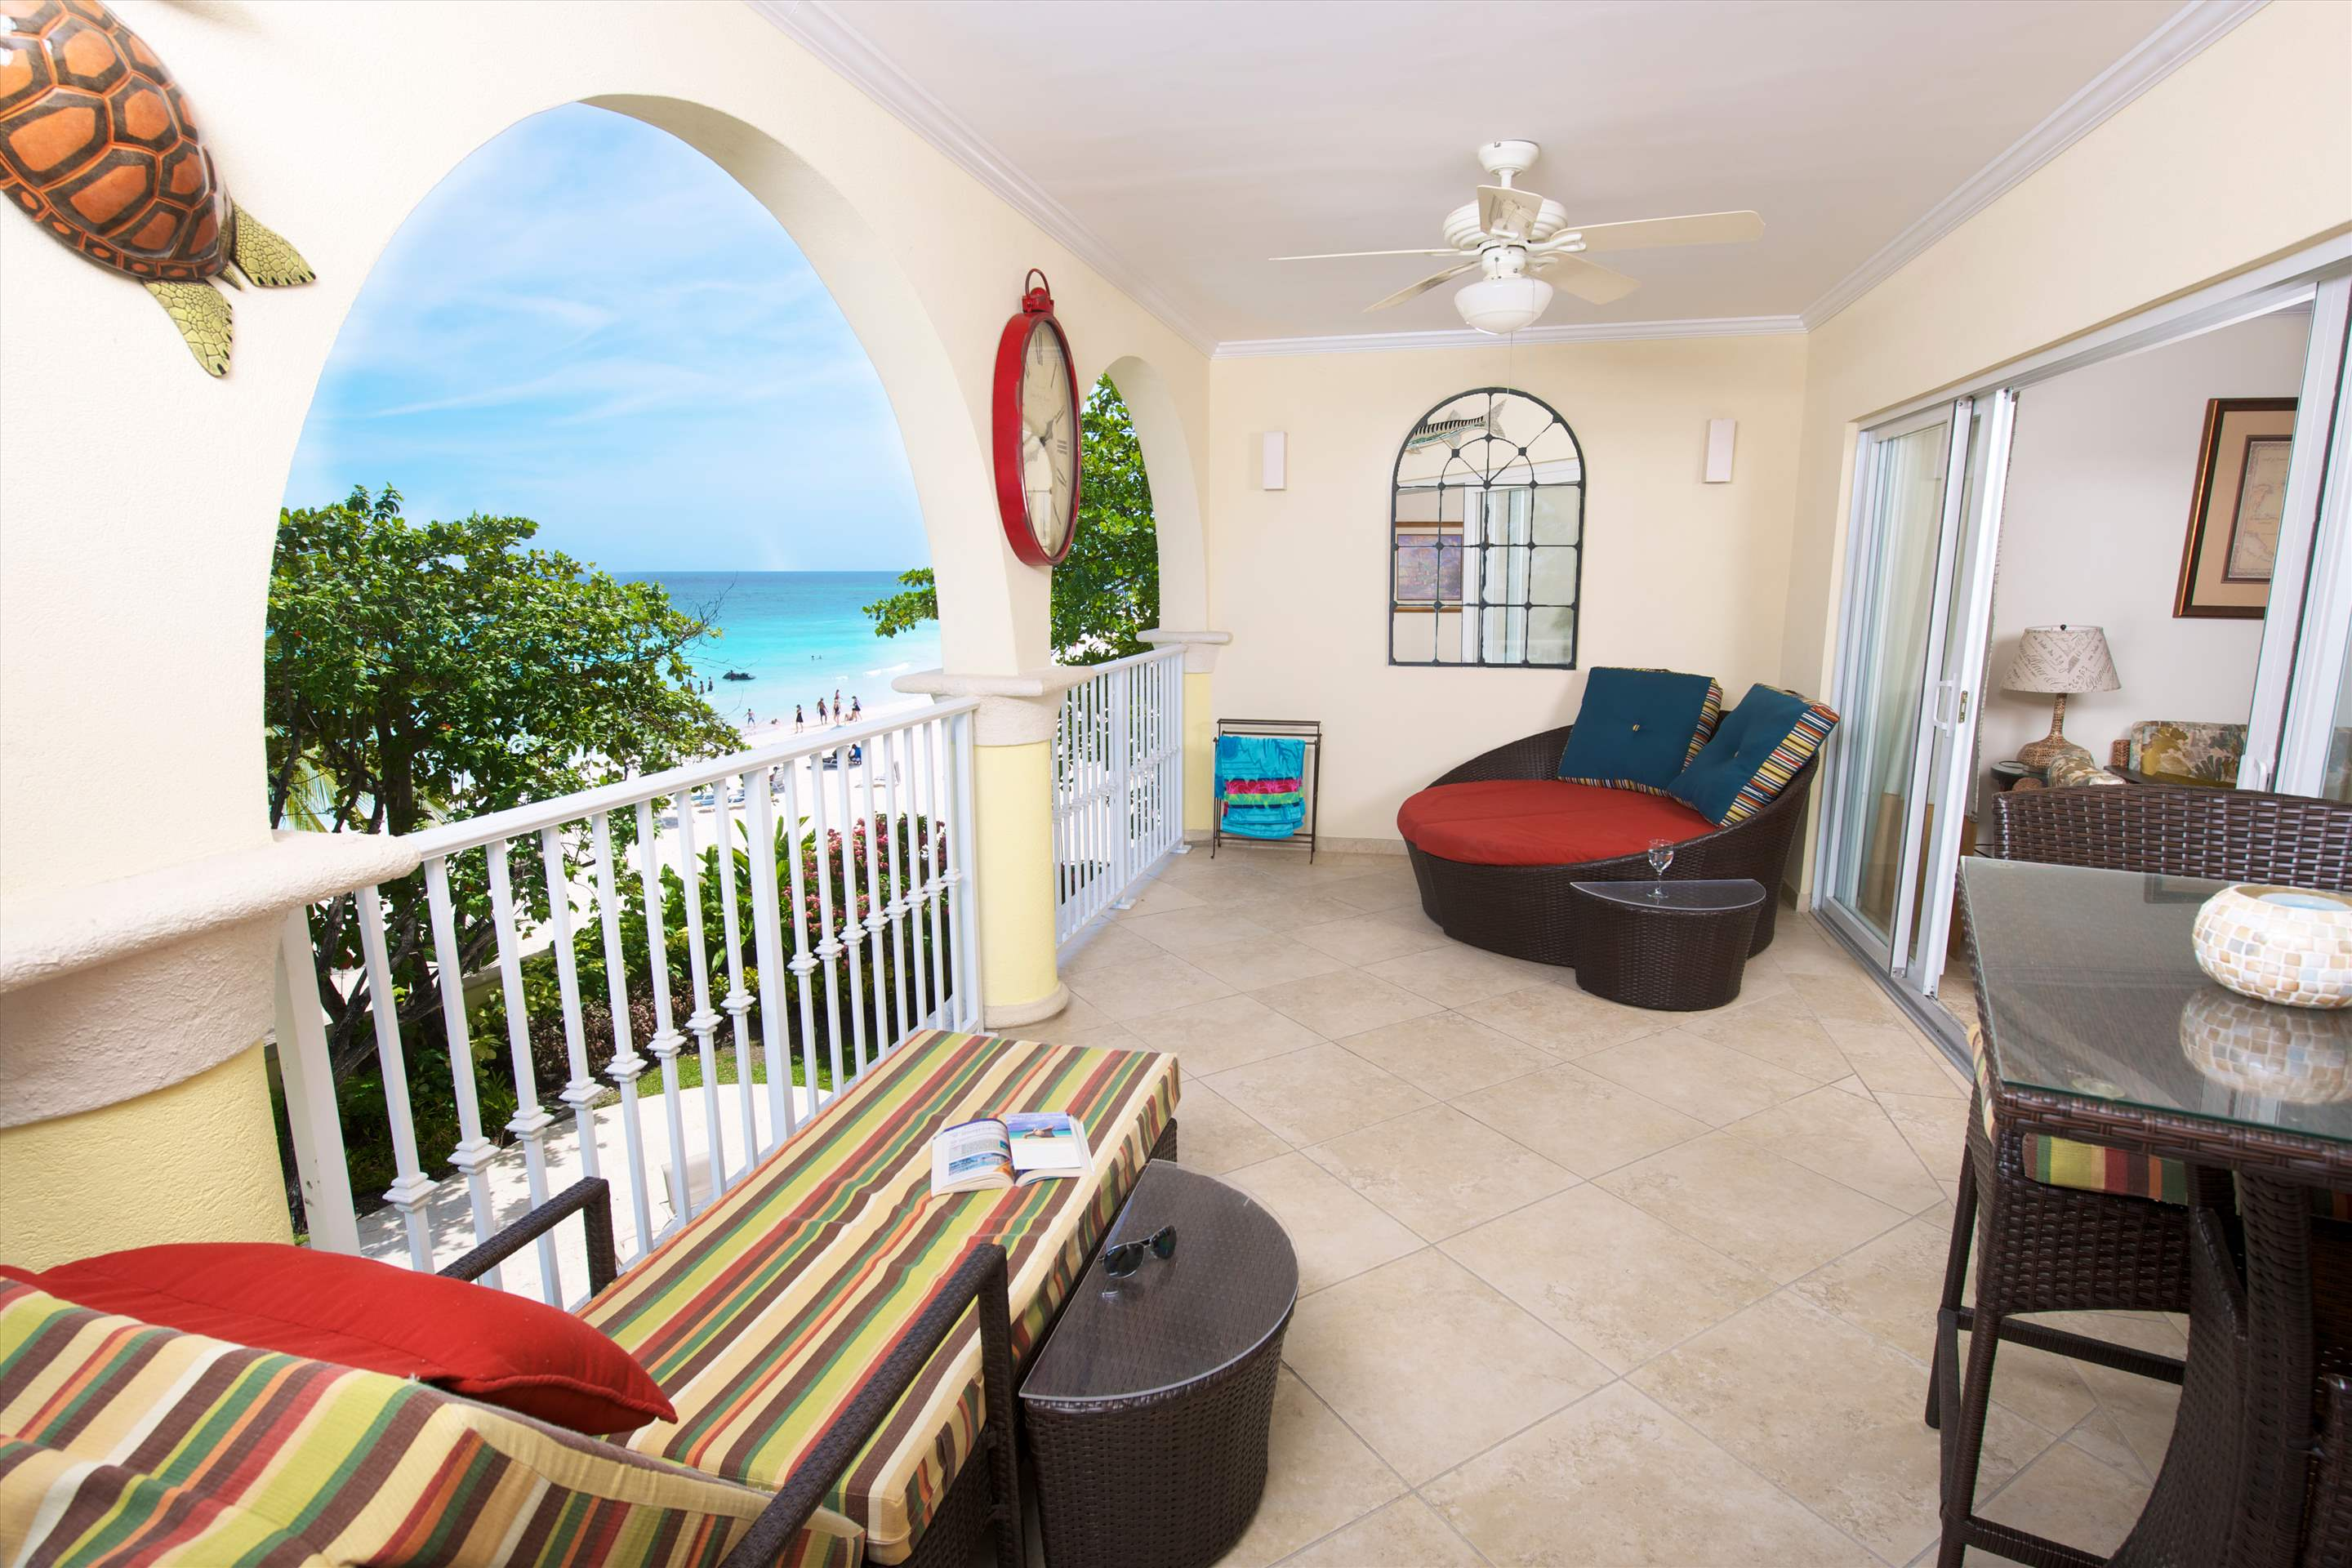 Sapphire Beach 203, 2 bedroom, 3 bedroom apartment in St. Lawrence Gap & South Coast, Barbados Photo #2